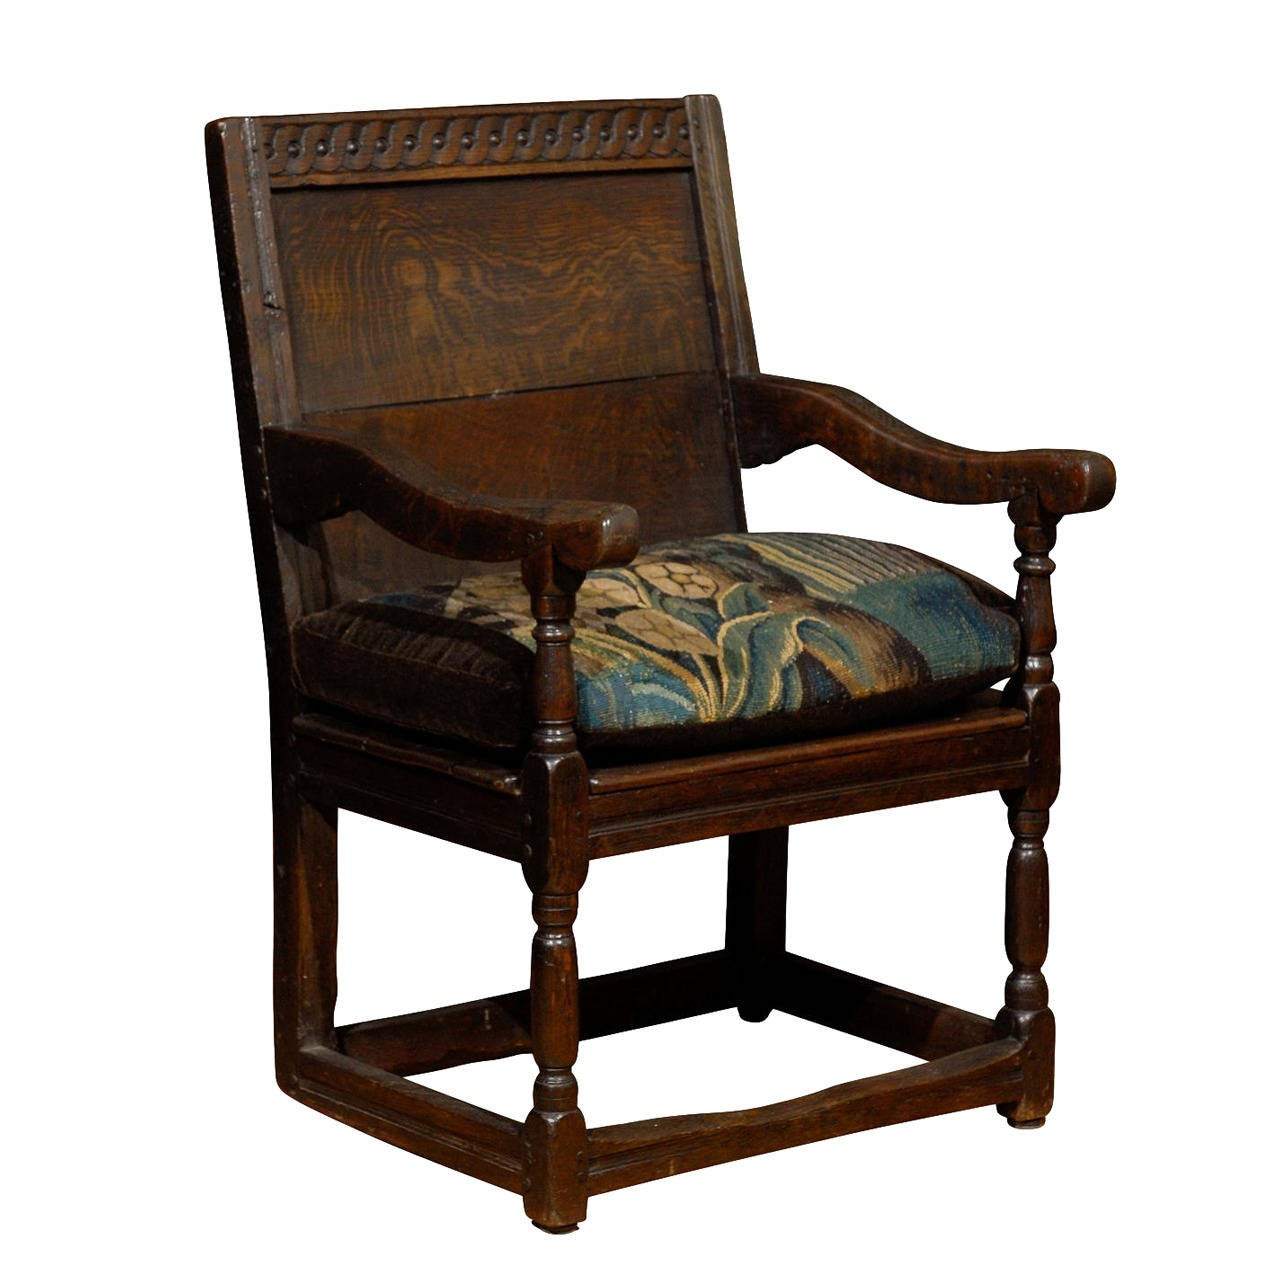 Late 17th Century Chair For Sale At 1stdibs